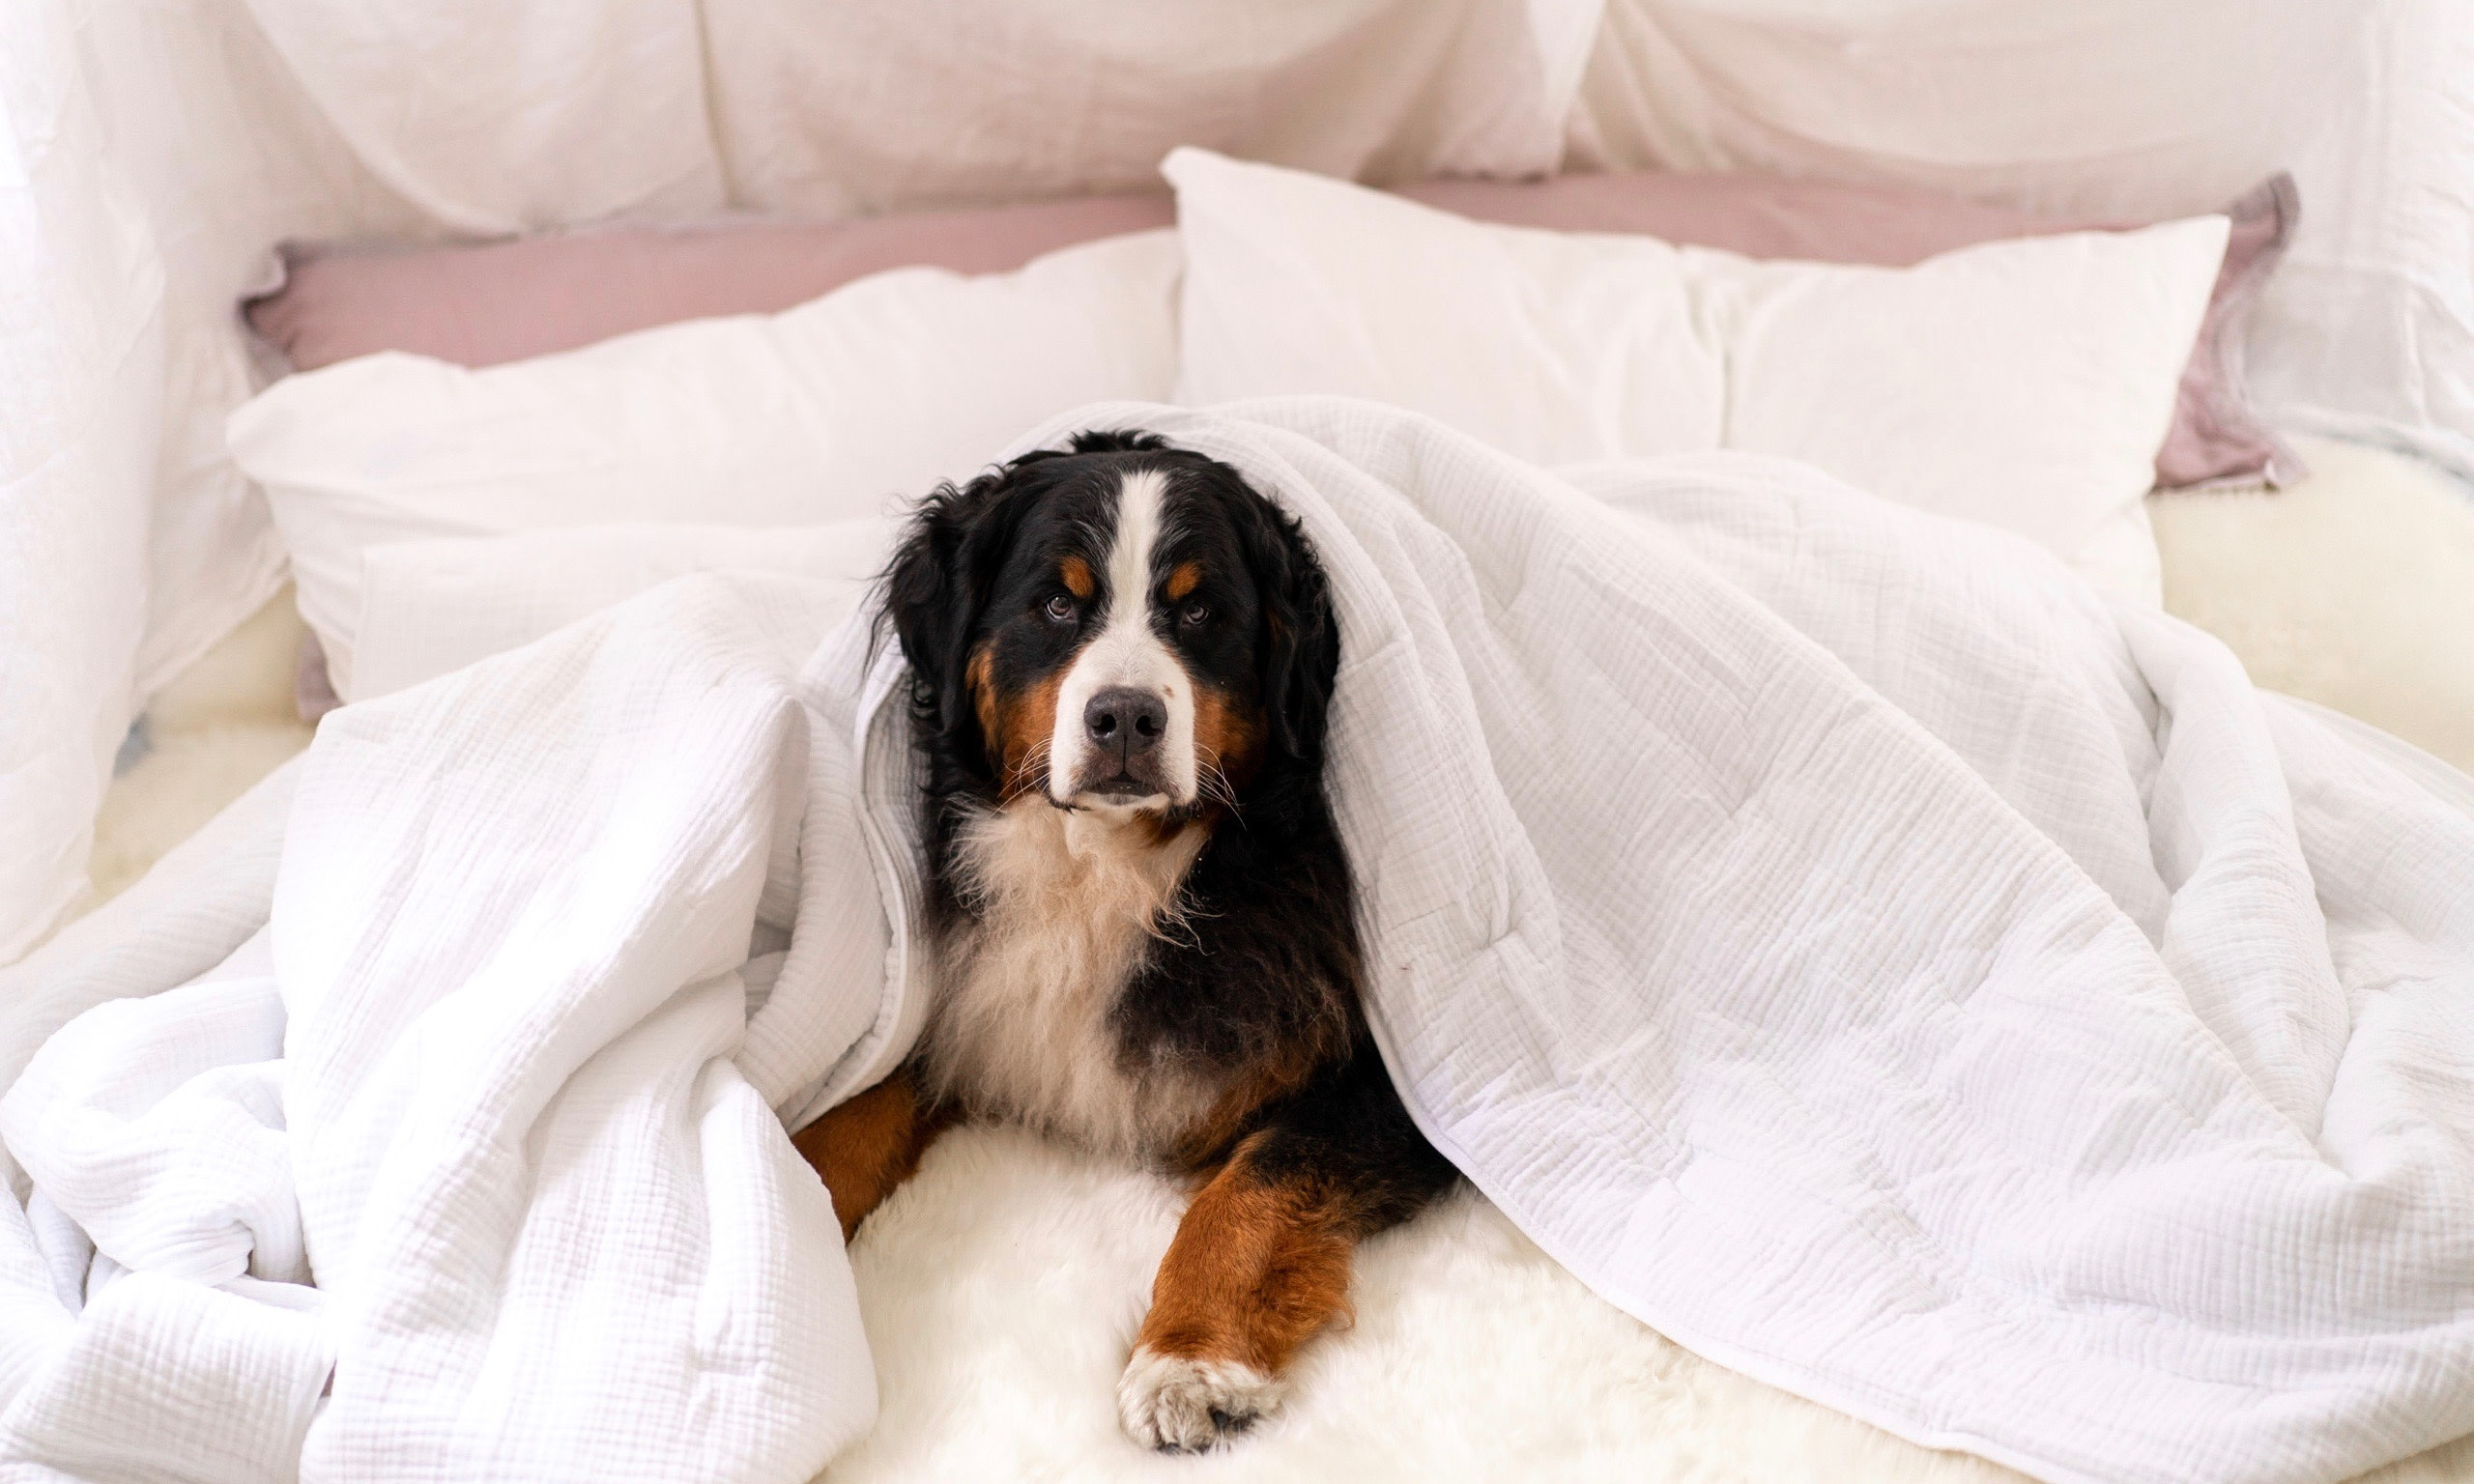 Bernese Mountain Dog in sheets.